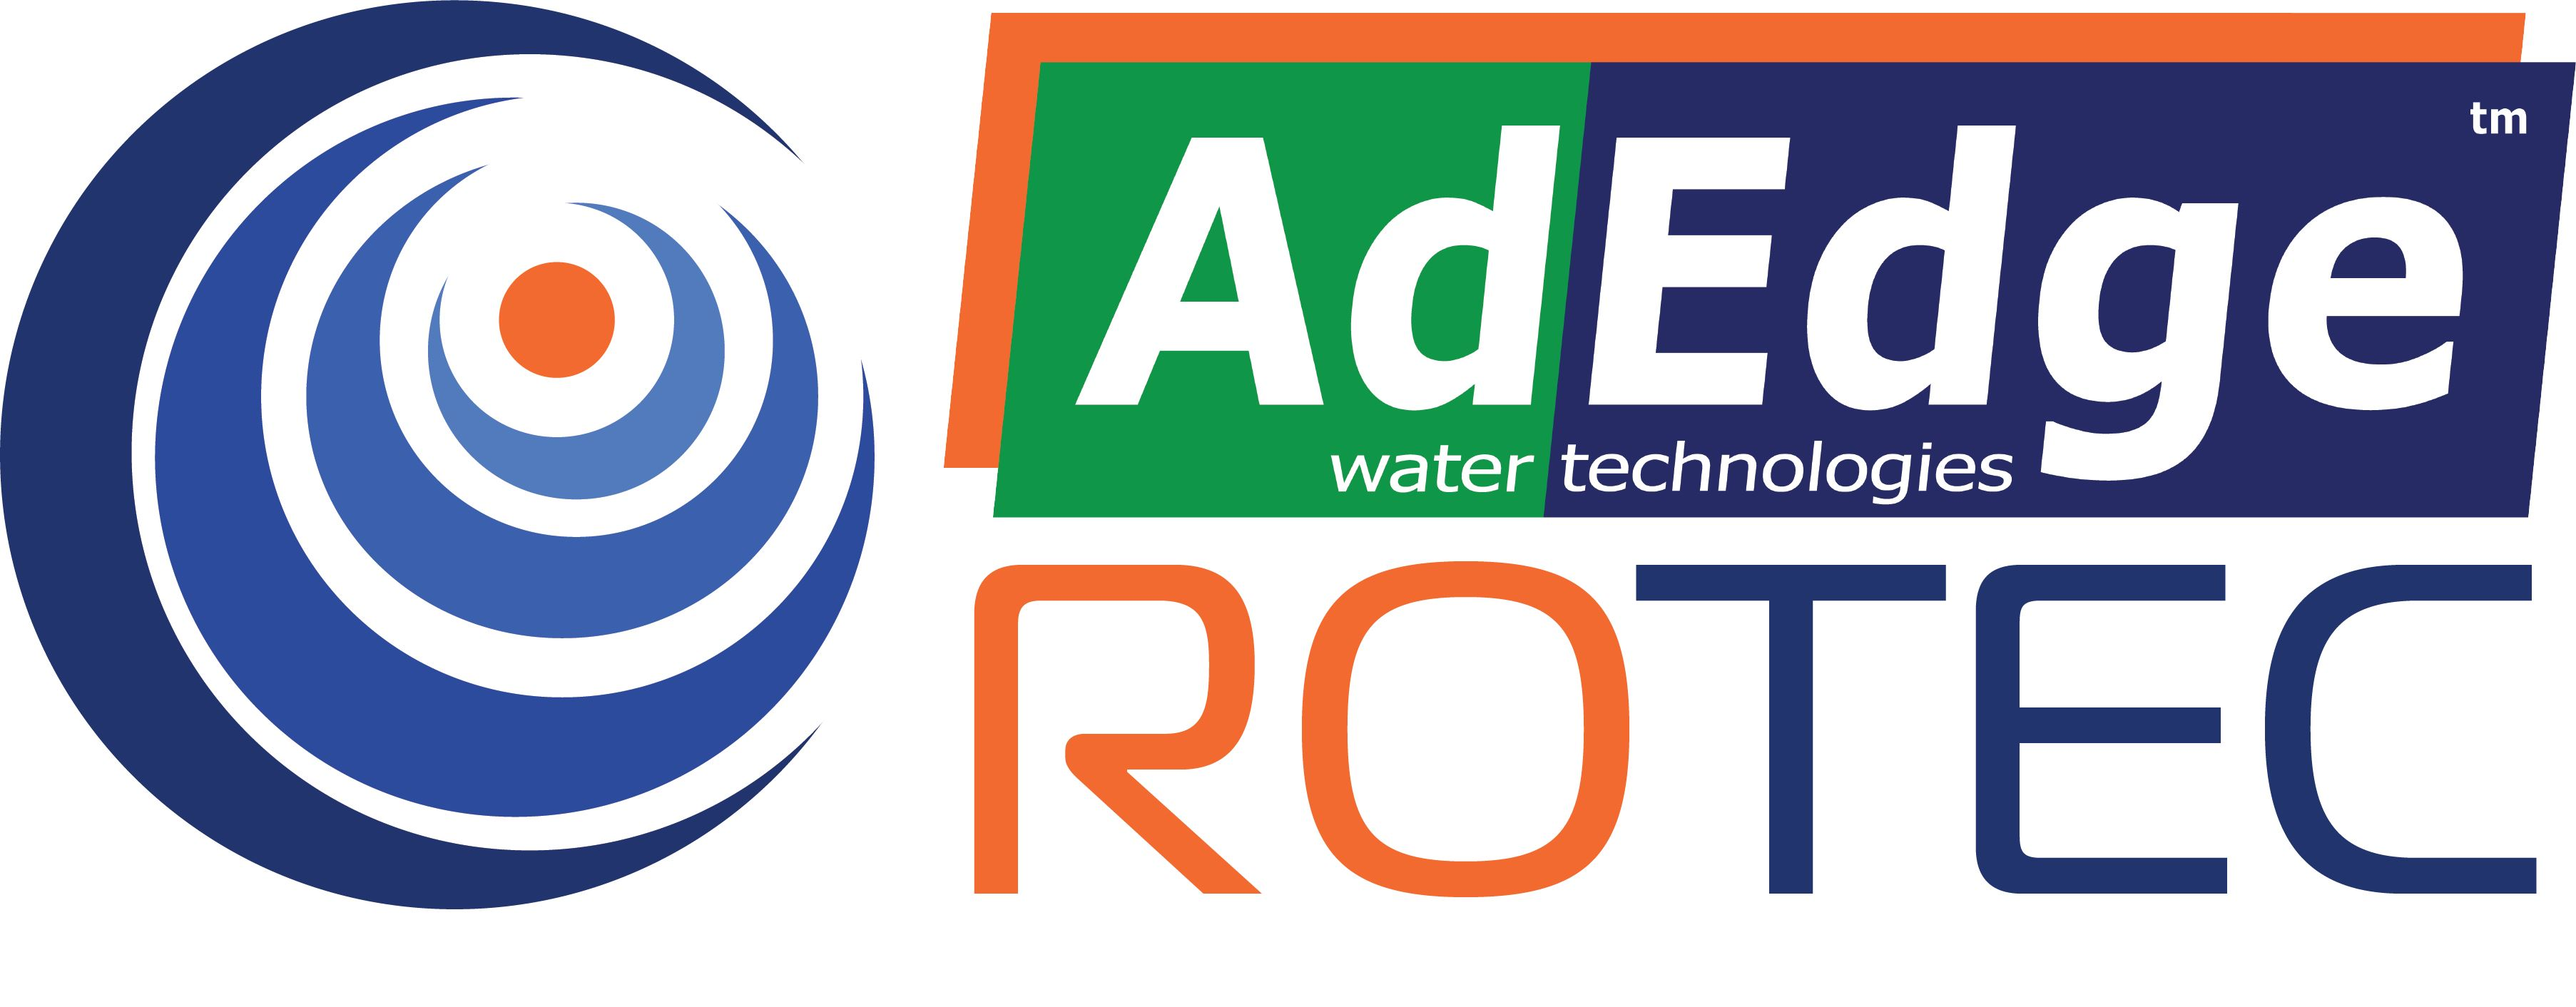 AdEdge-Rotec - Ultra-High Recovery Flow Reversal Reverse Osmosis Systems